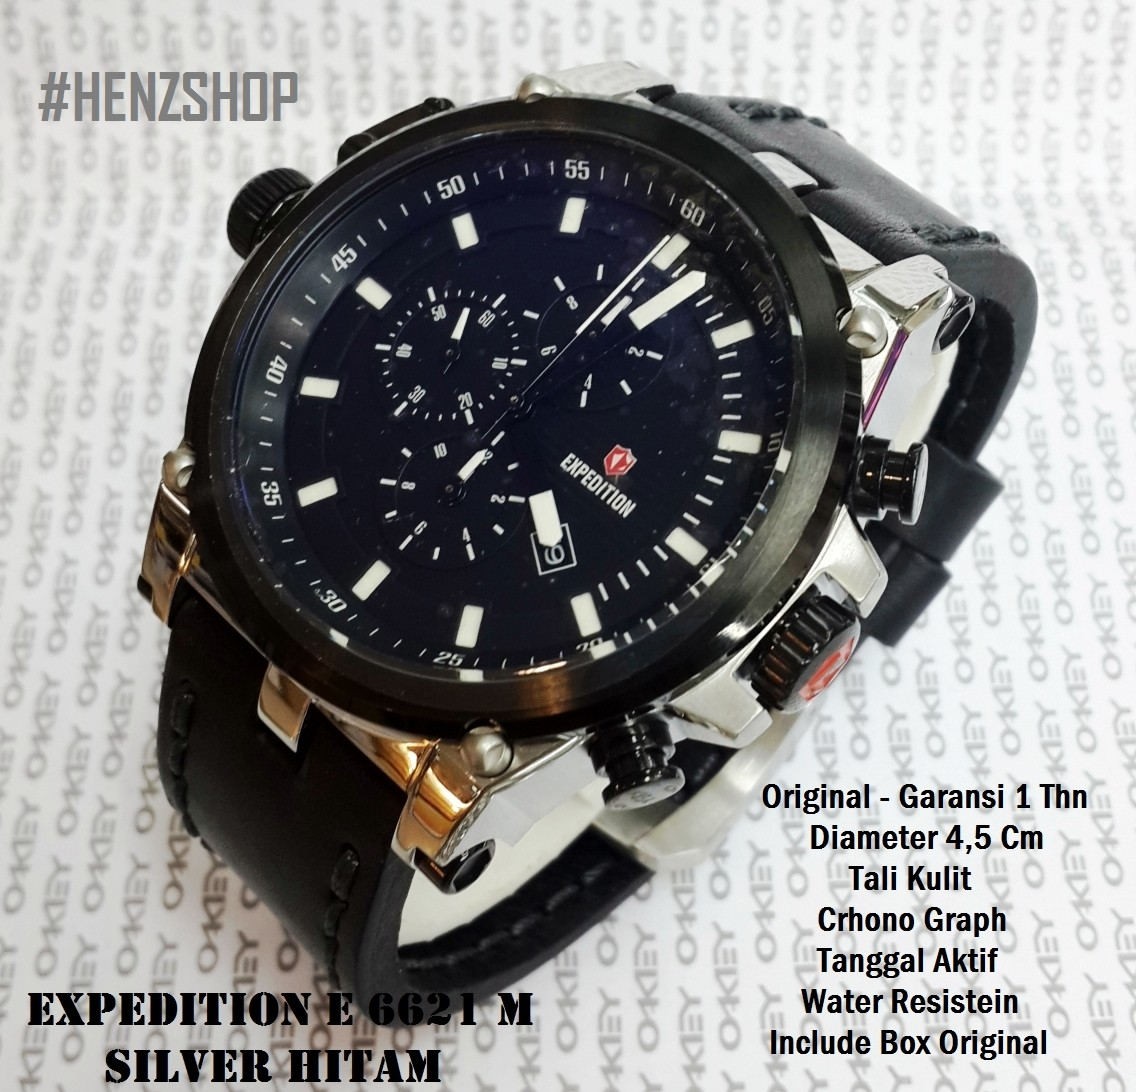 Jual Harga Jam Tangan Expedition Welcome To E6392 Rose Gold Black Men E 6621 M Original